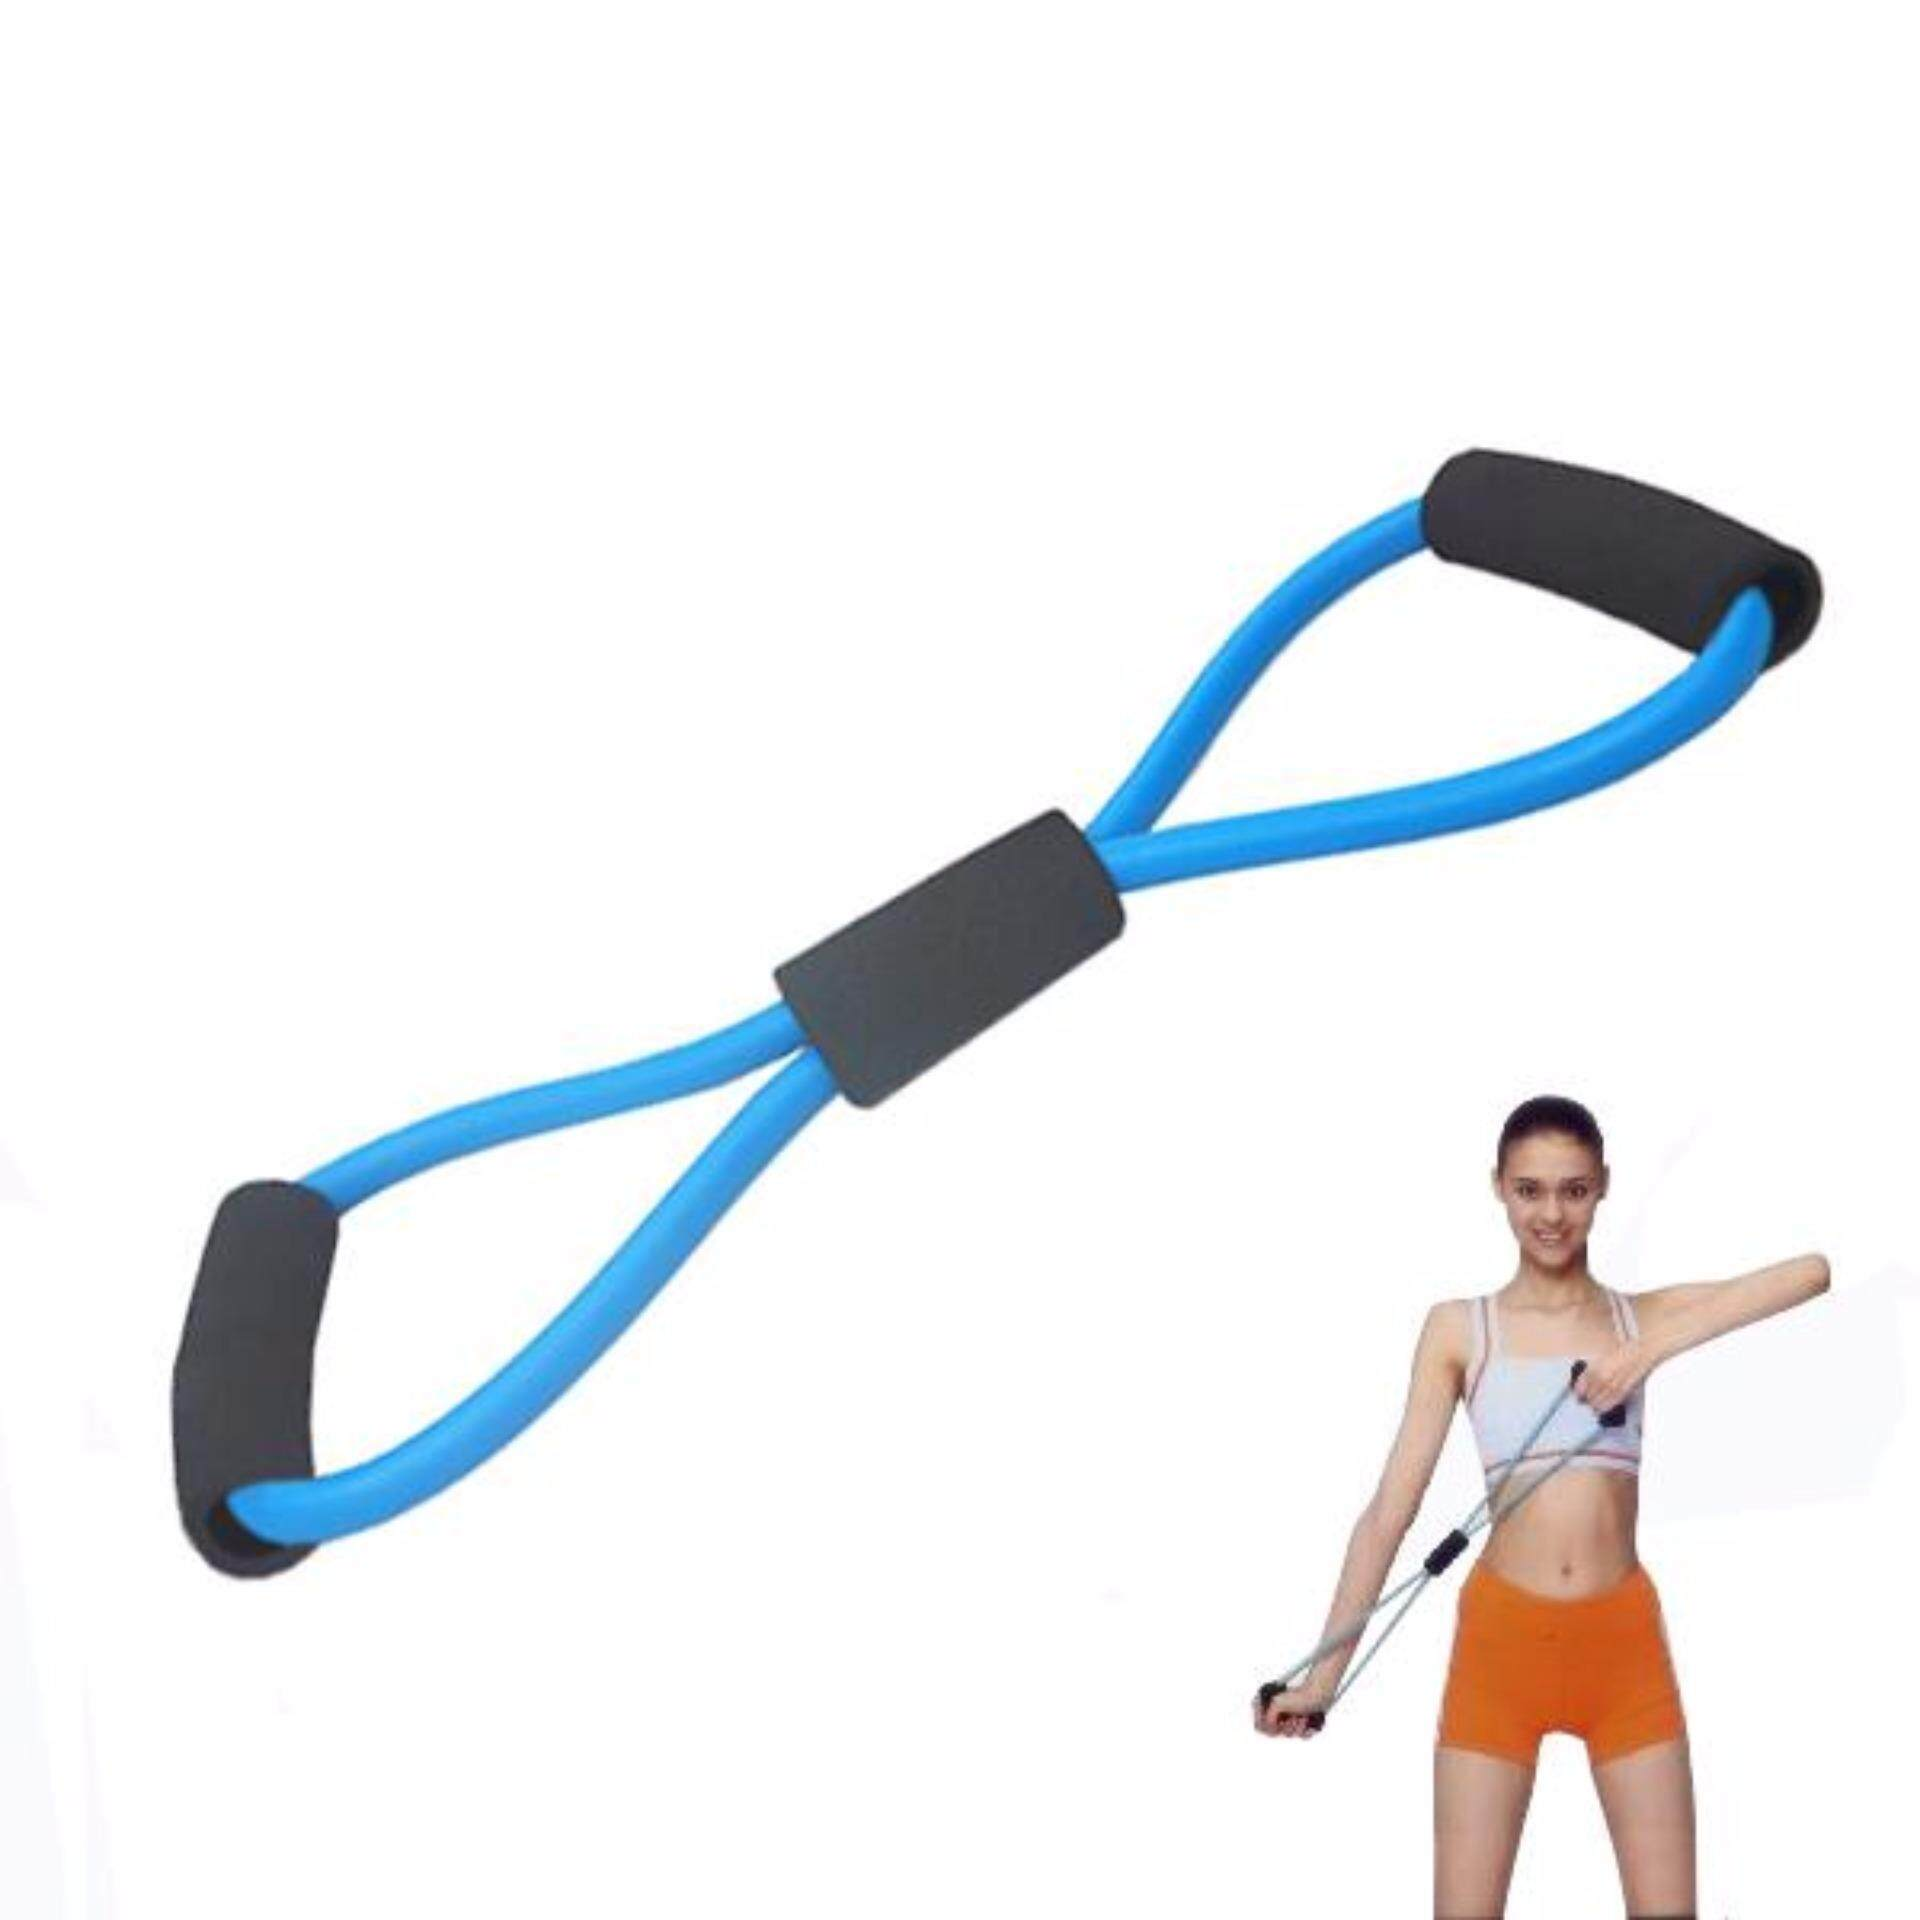 Yoga Resistance Training Bands Tube Workout Exercise Body Stretch